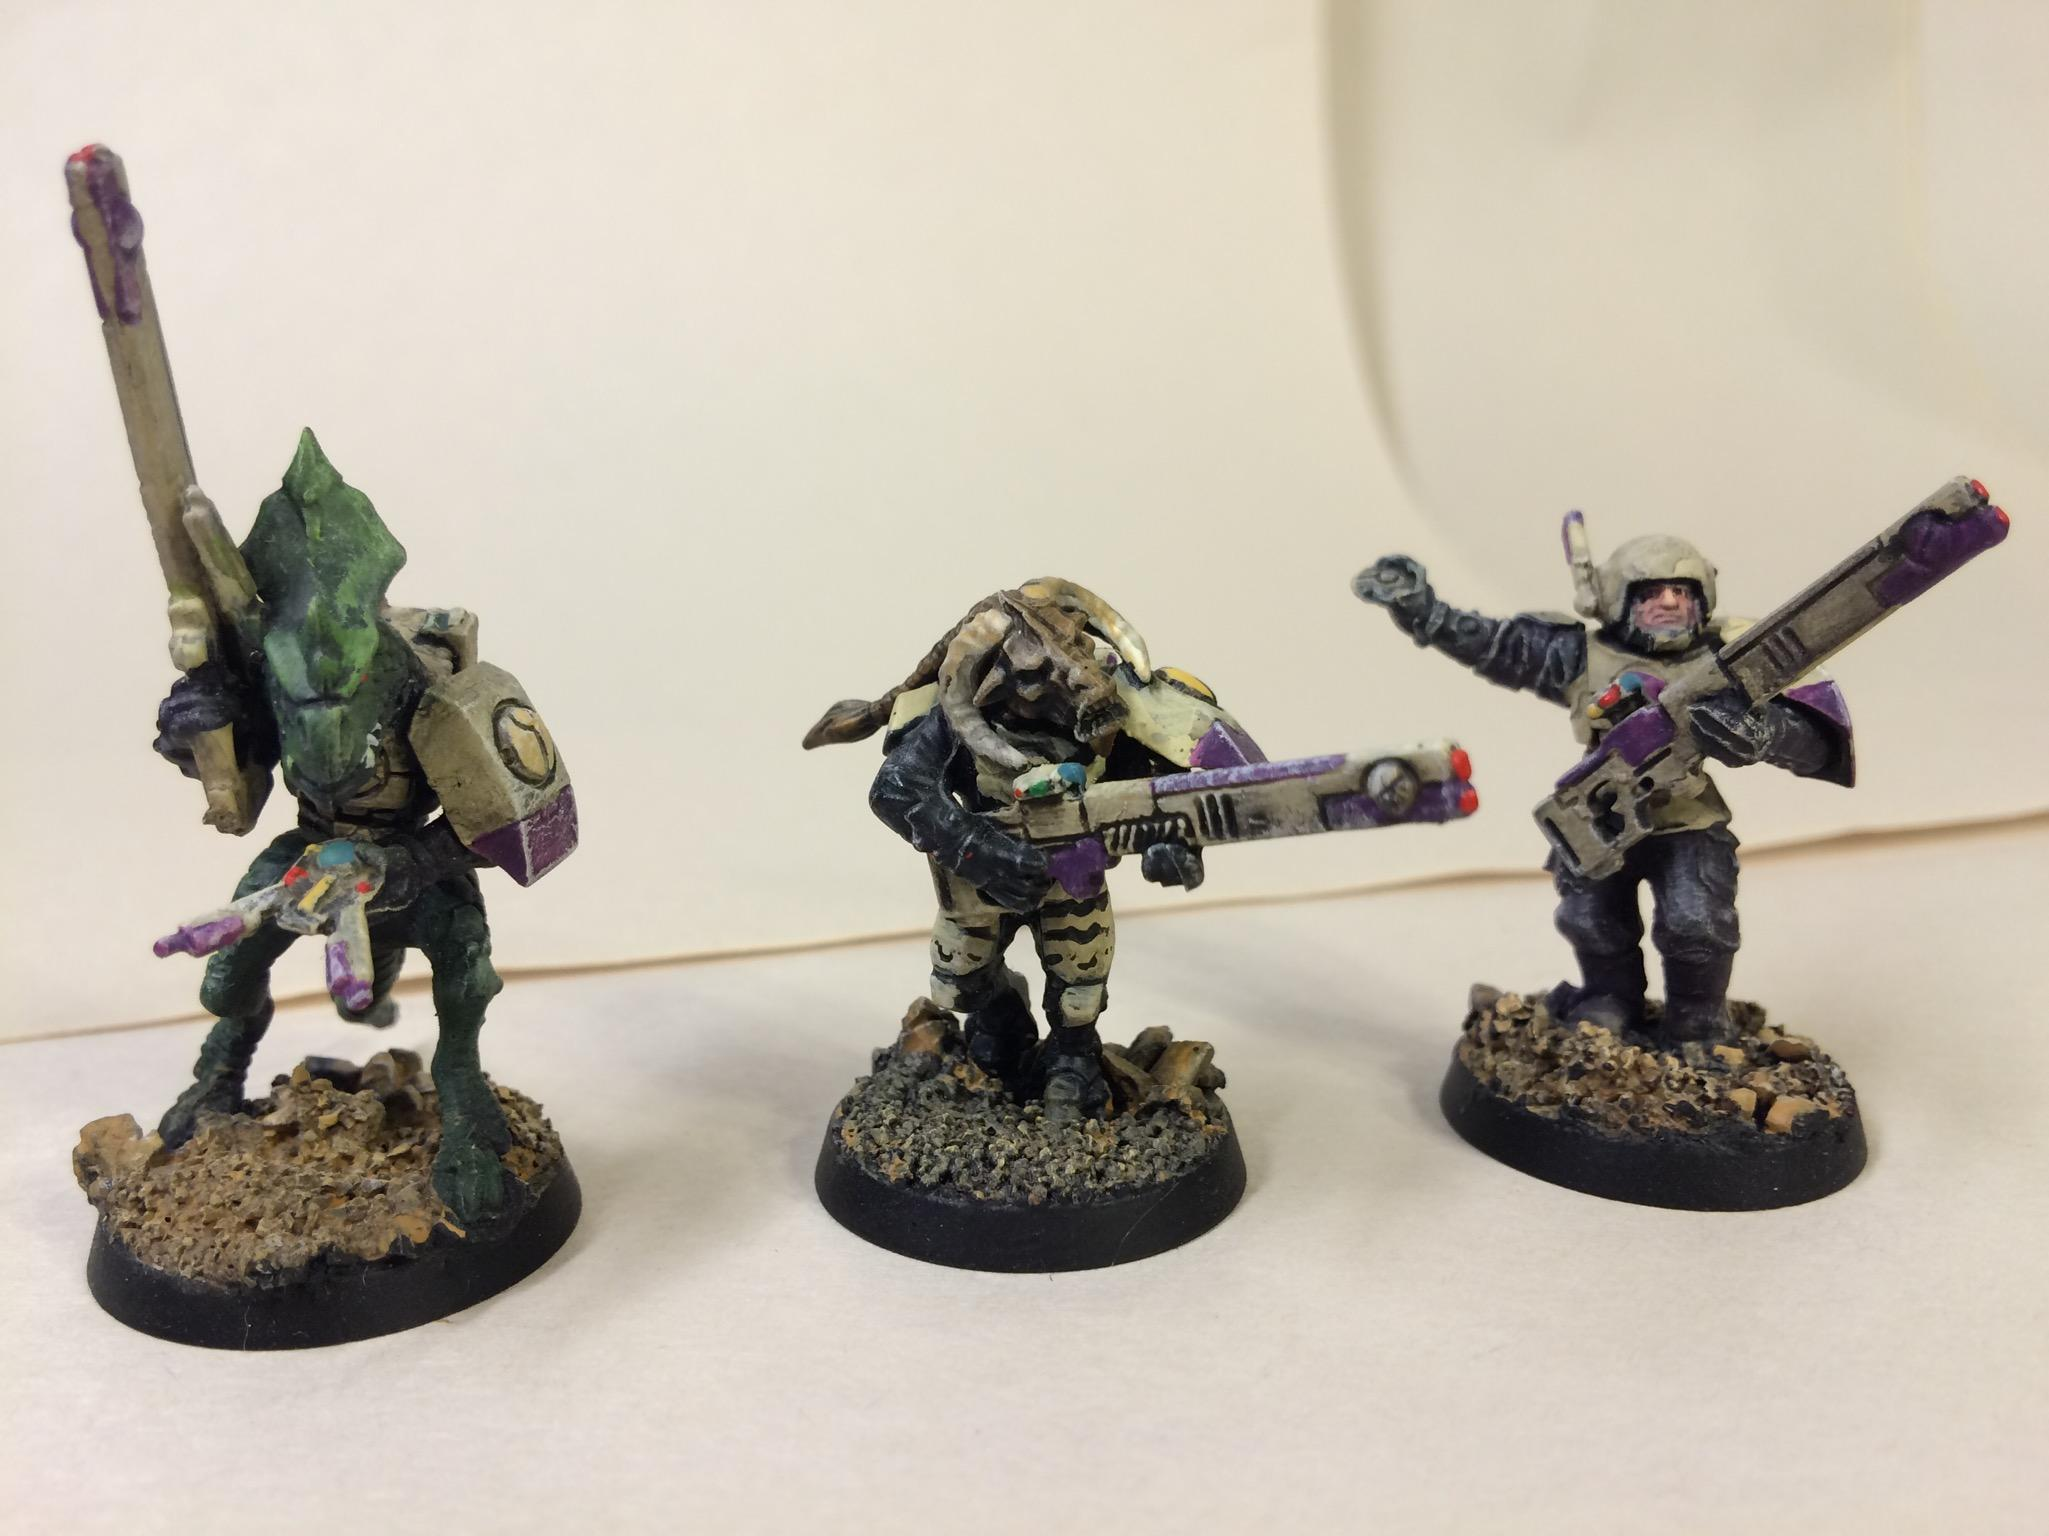 Fire Warriors, Gue'vesa, Tau, Tauarmy7/28/16